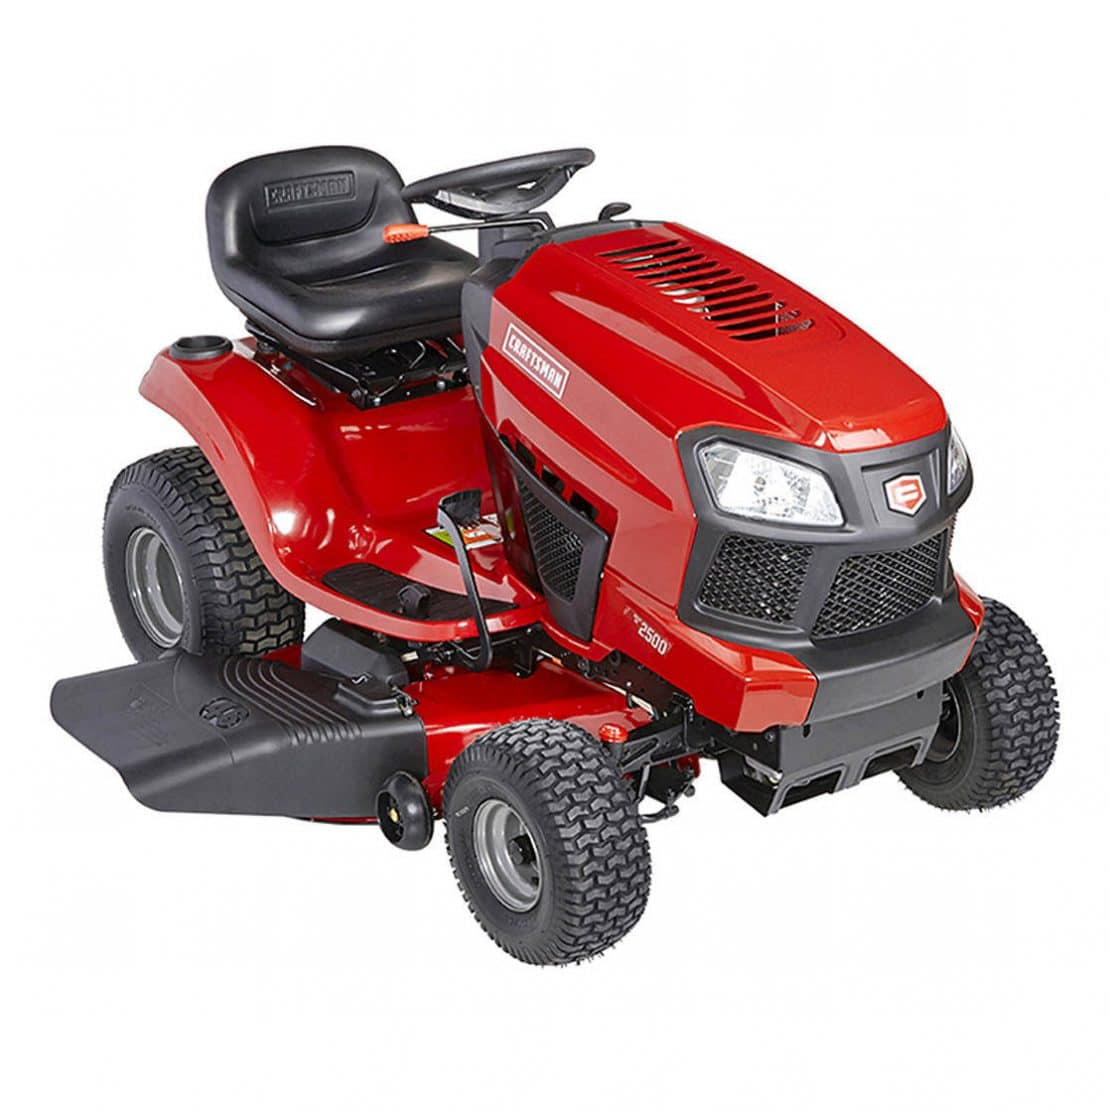 The Best Lawn Yard Amp Garden Tractor Buyer S Guide